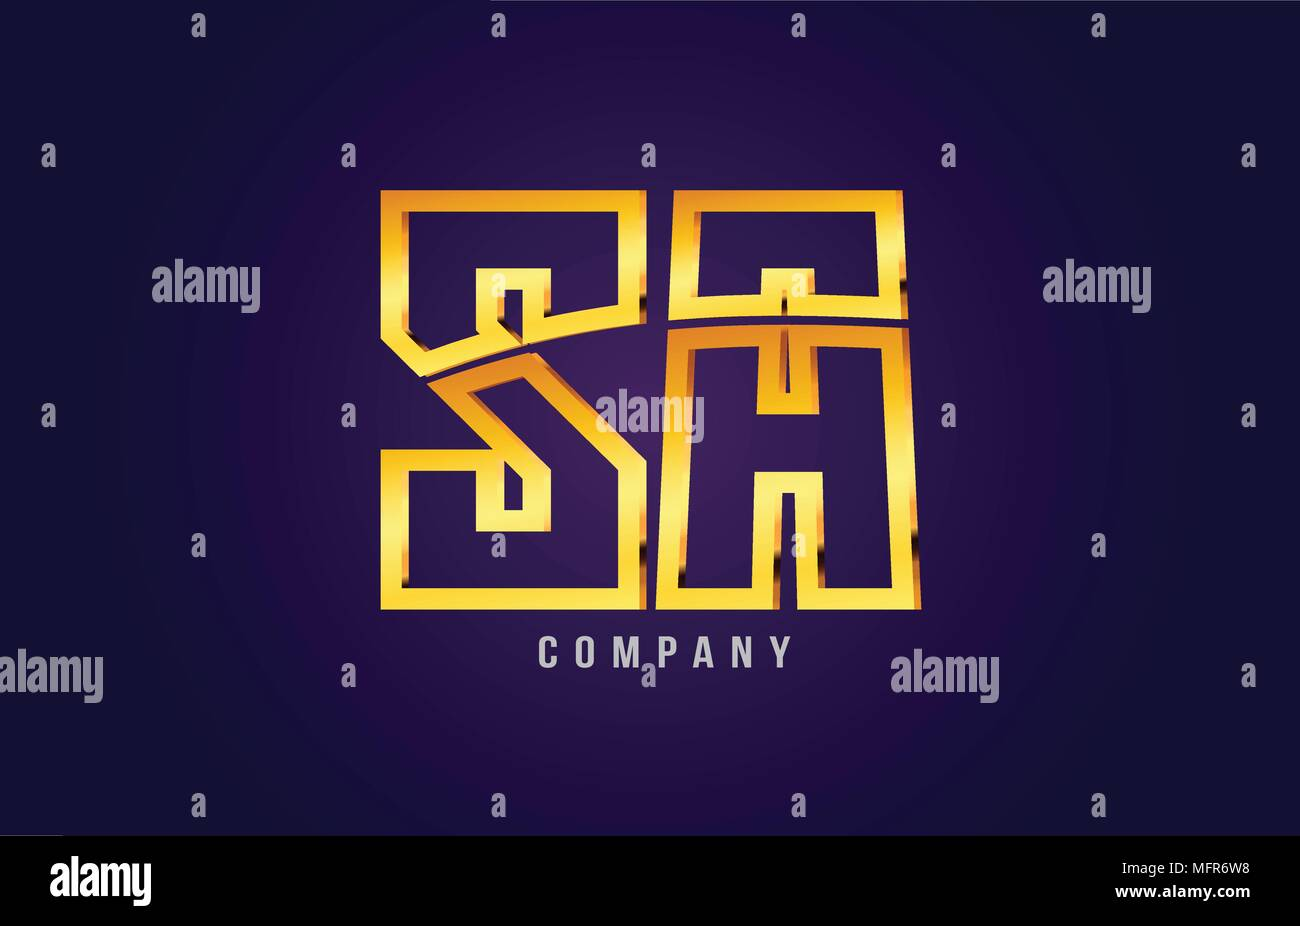 gold golden alphabet letter sa s a logo combination design suitable for a company or business on a puple blue background Stock Vector